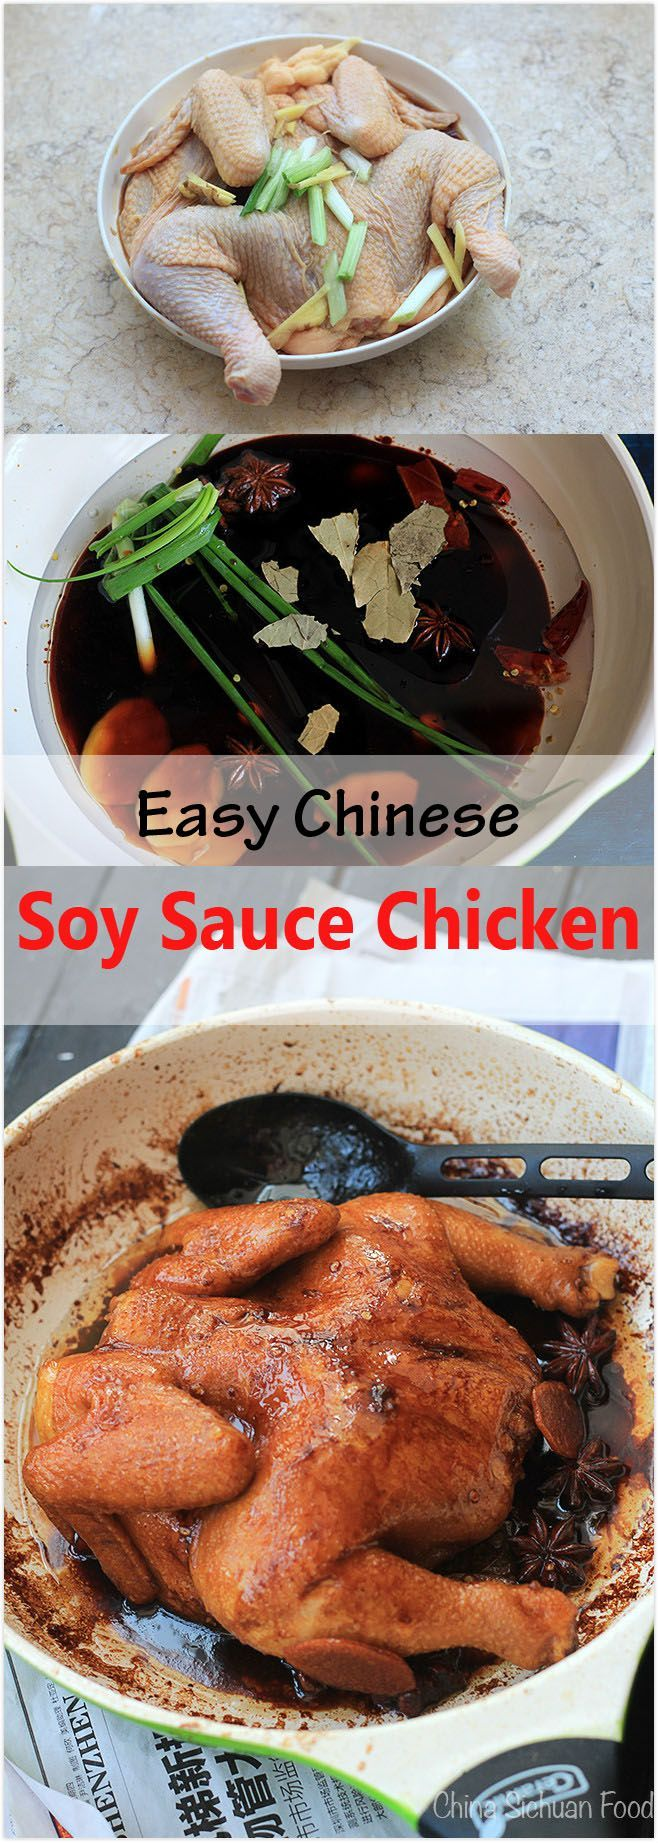 Easy chinese soy sauce chicken recipe soy sauce chicken soy easy chinese soy sauce chicken forumfinder Gallery